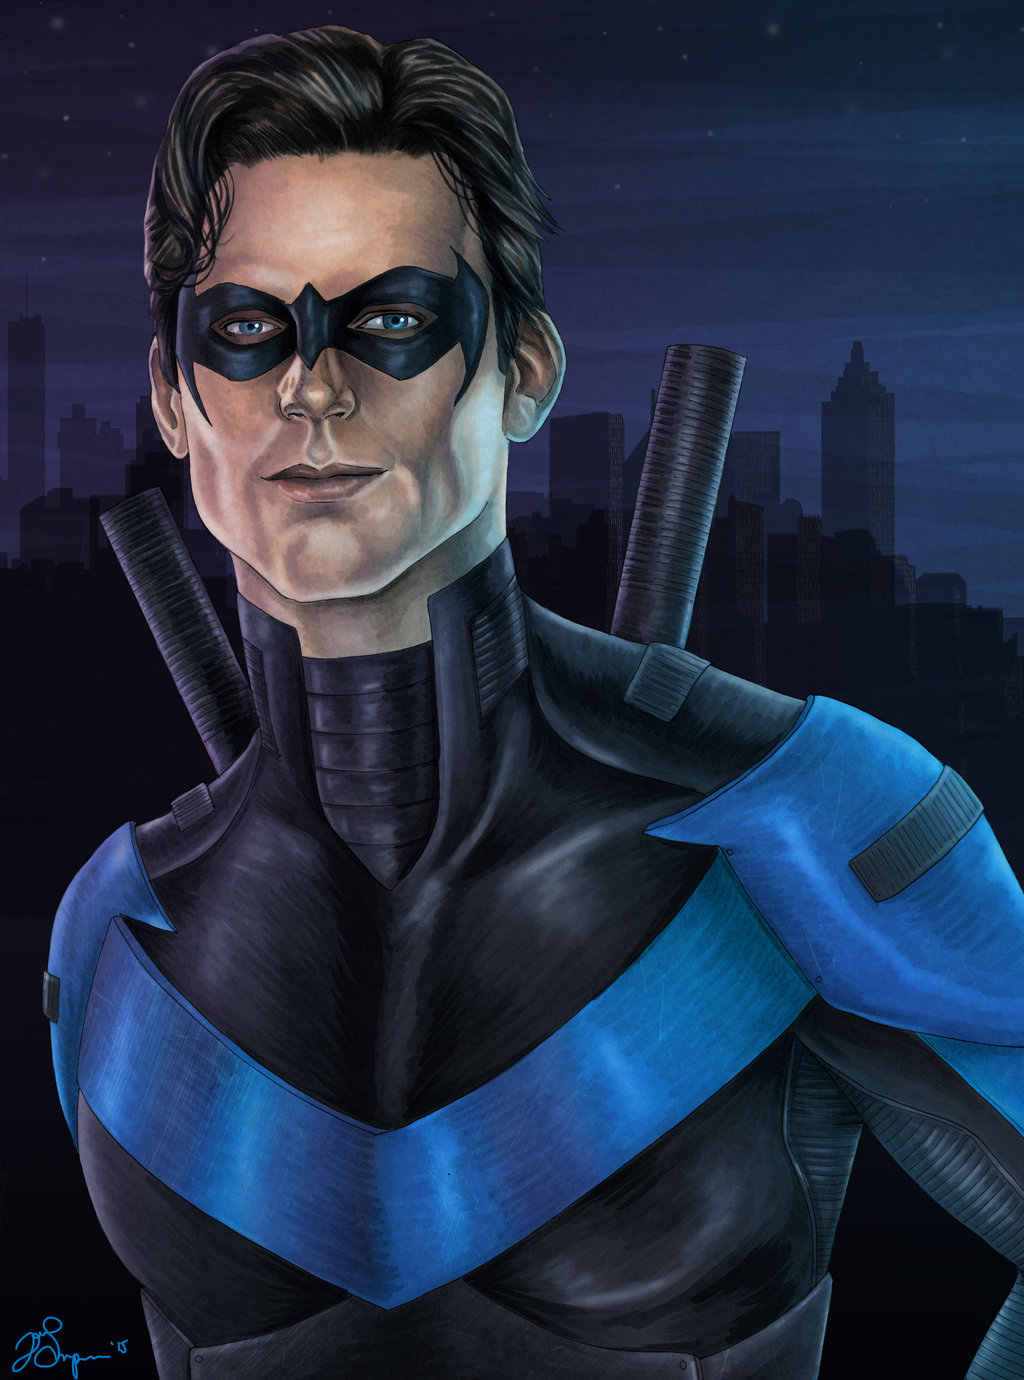 nightwing_by_jgiampietro-d9jk1ae